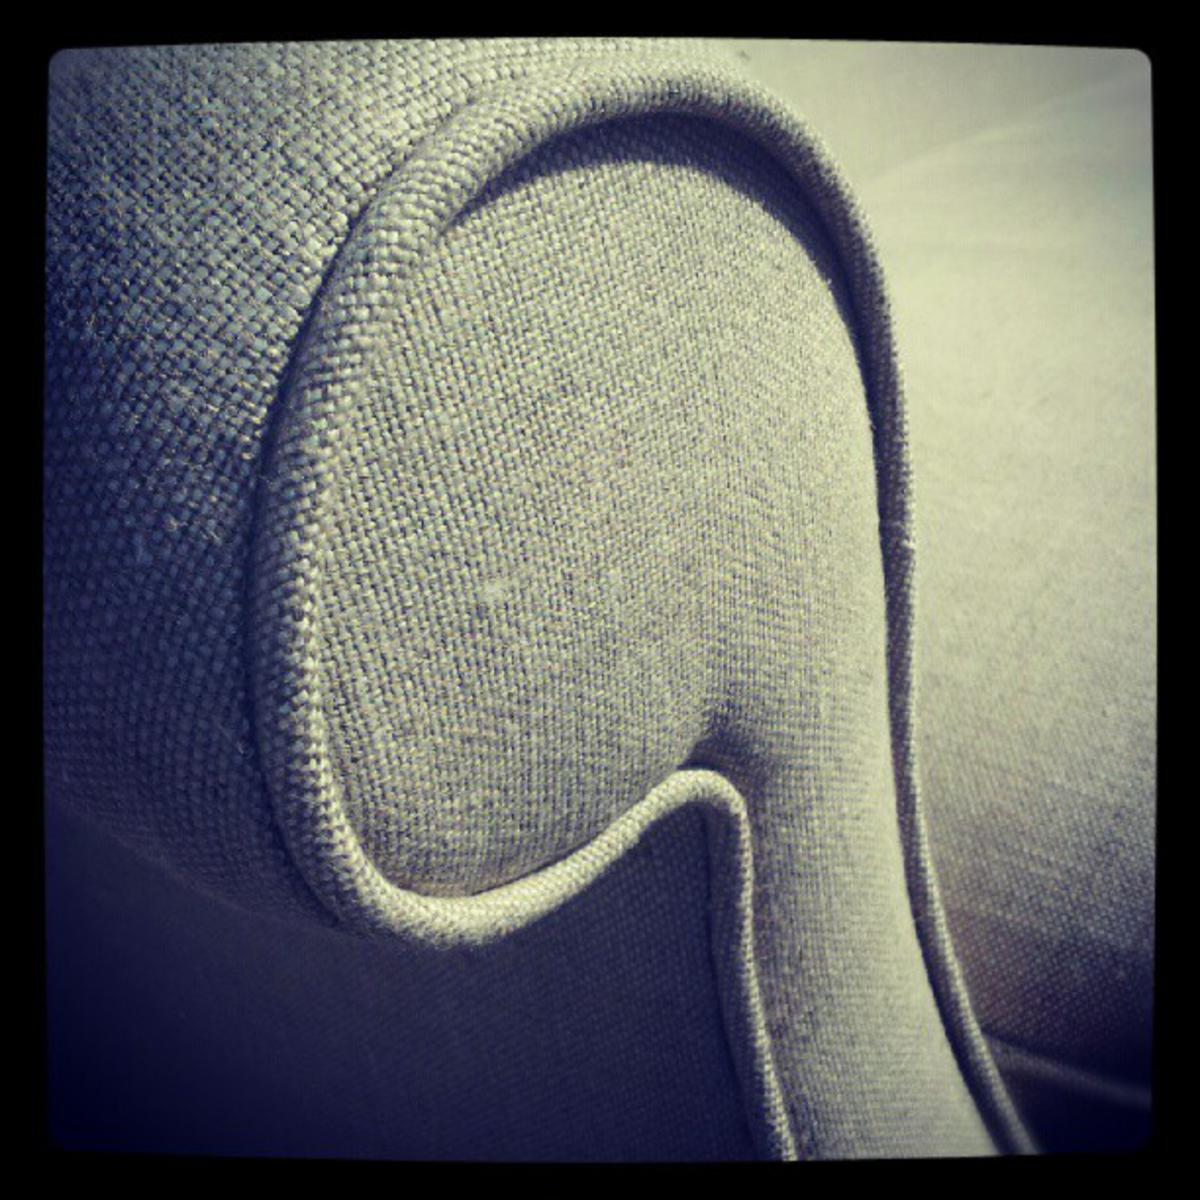 PROVIDING TOP QUALITY UPHOLSTERY